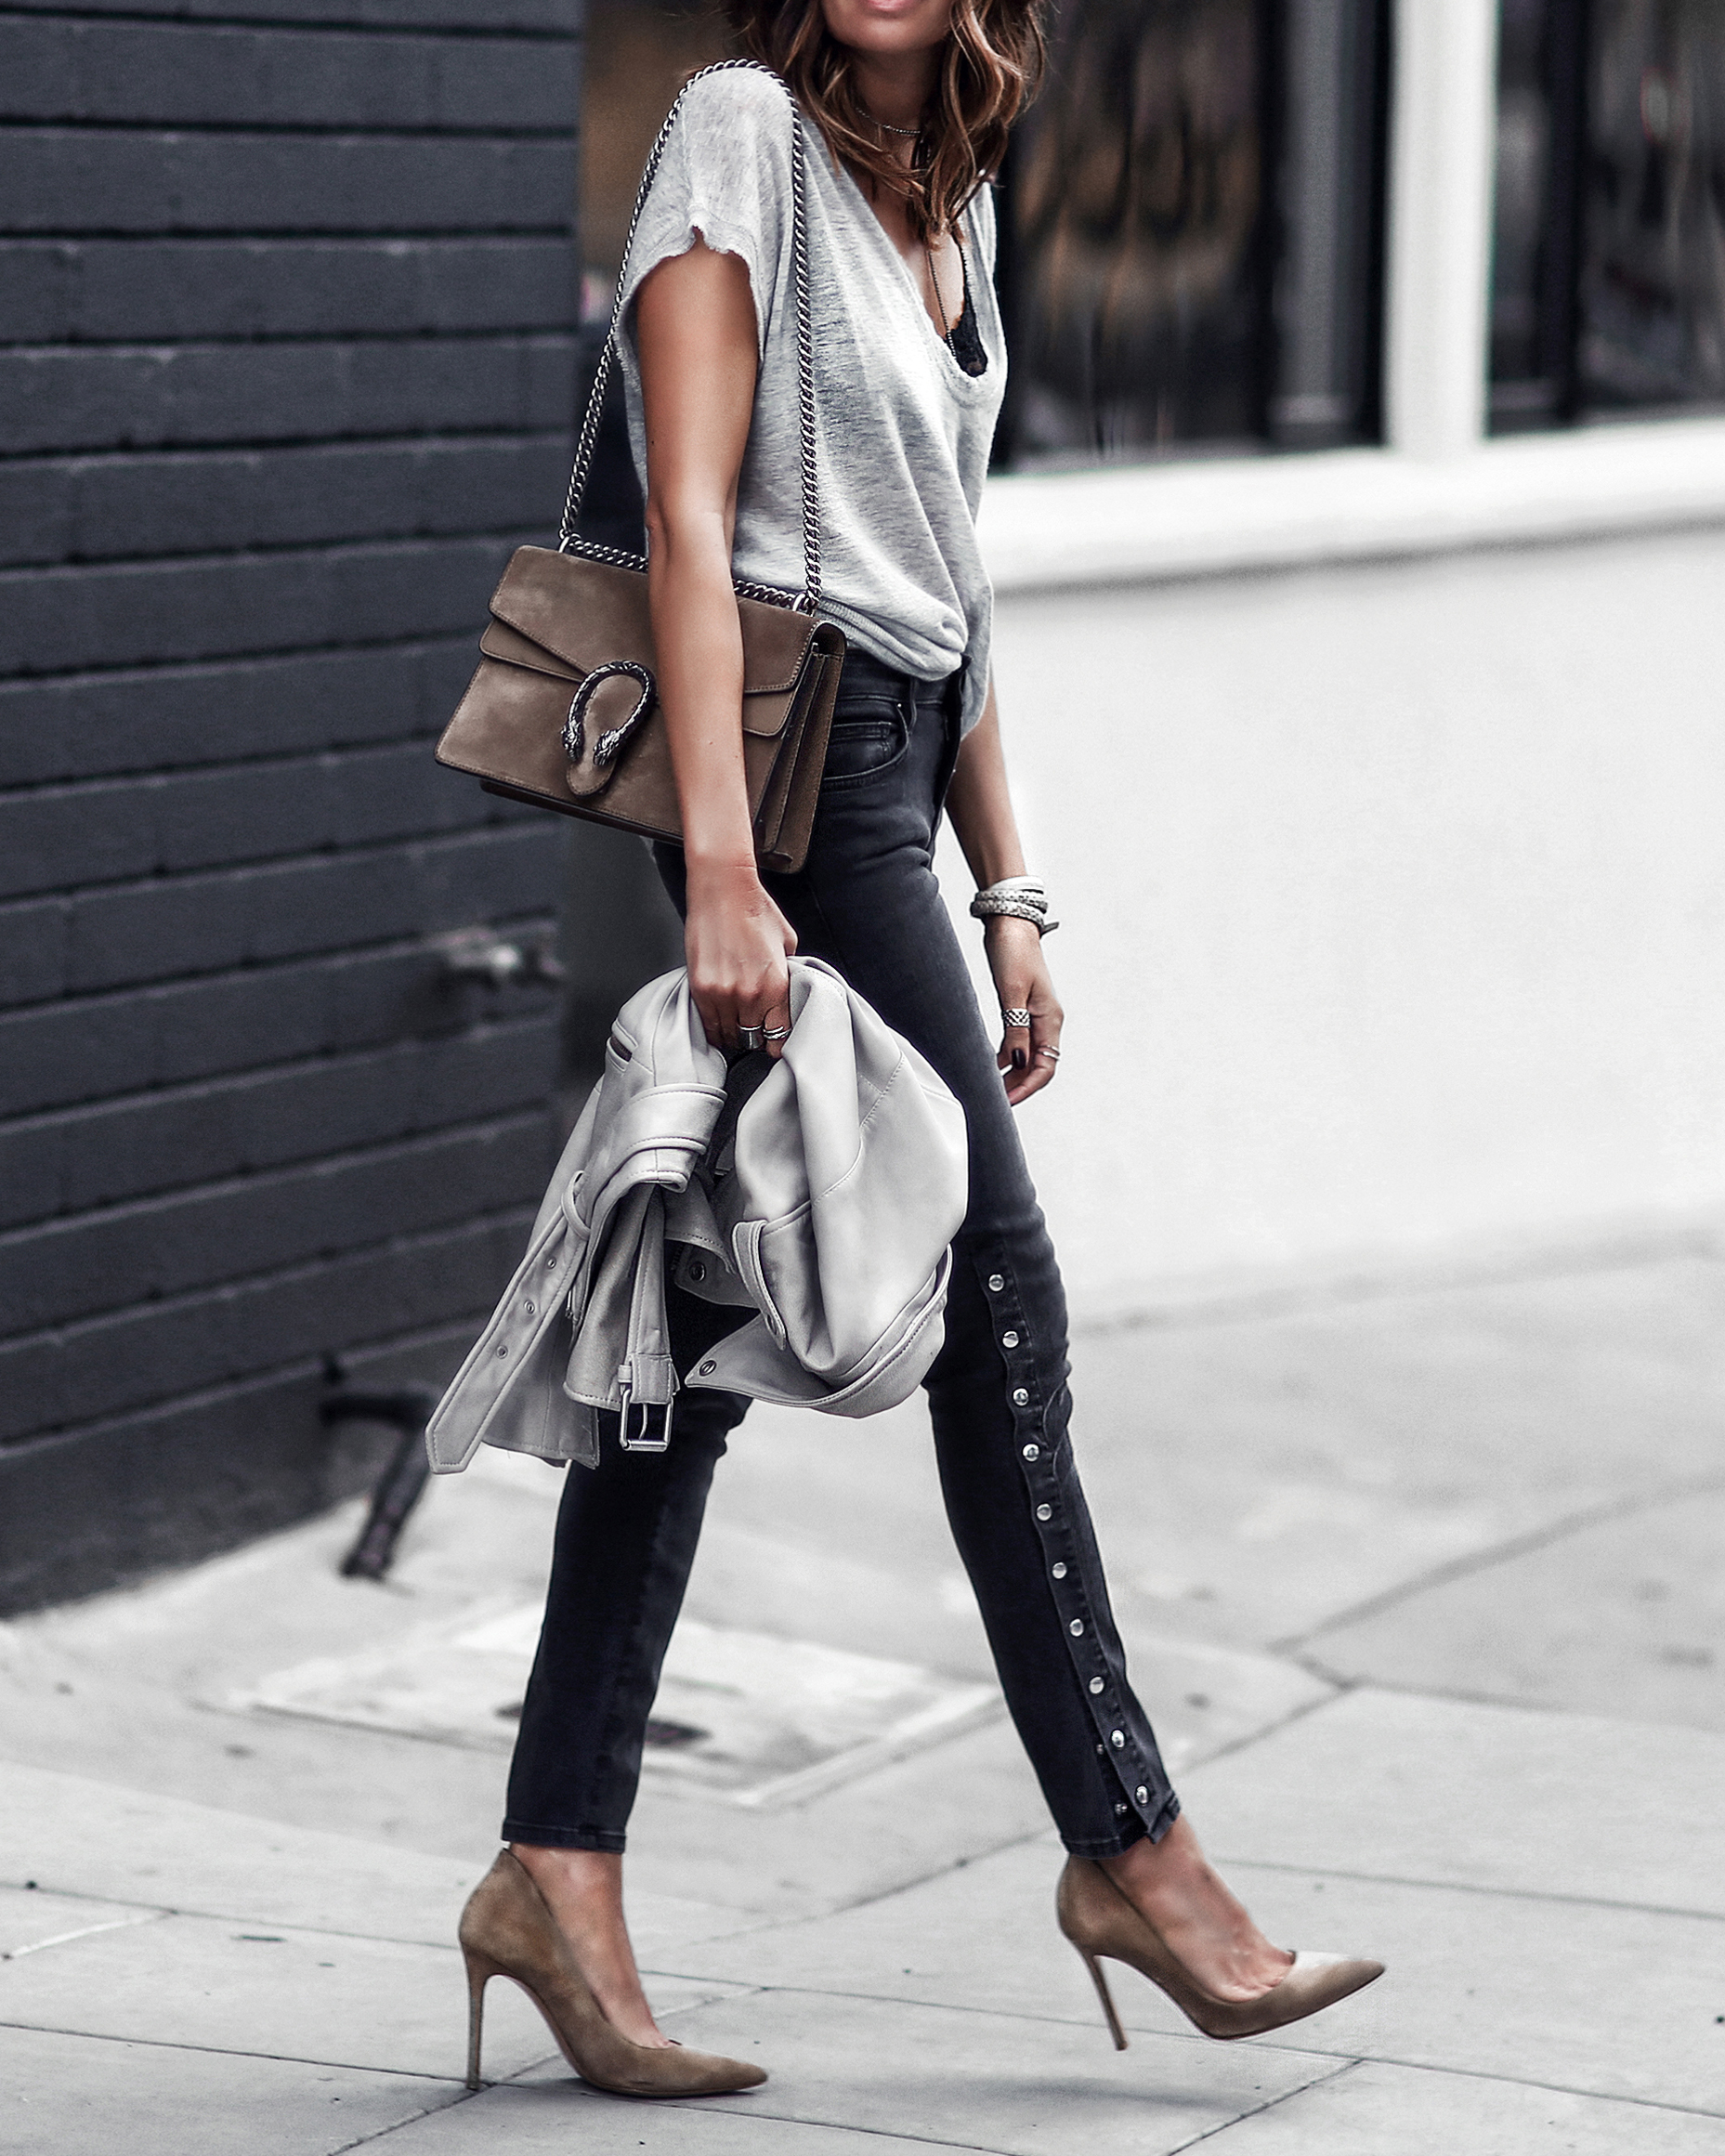 gray oversized knit tshirt, black lace bralette, faded black jeans with snaps, nude pumps, gray leather jacket, gucci bag